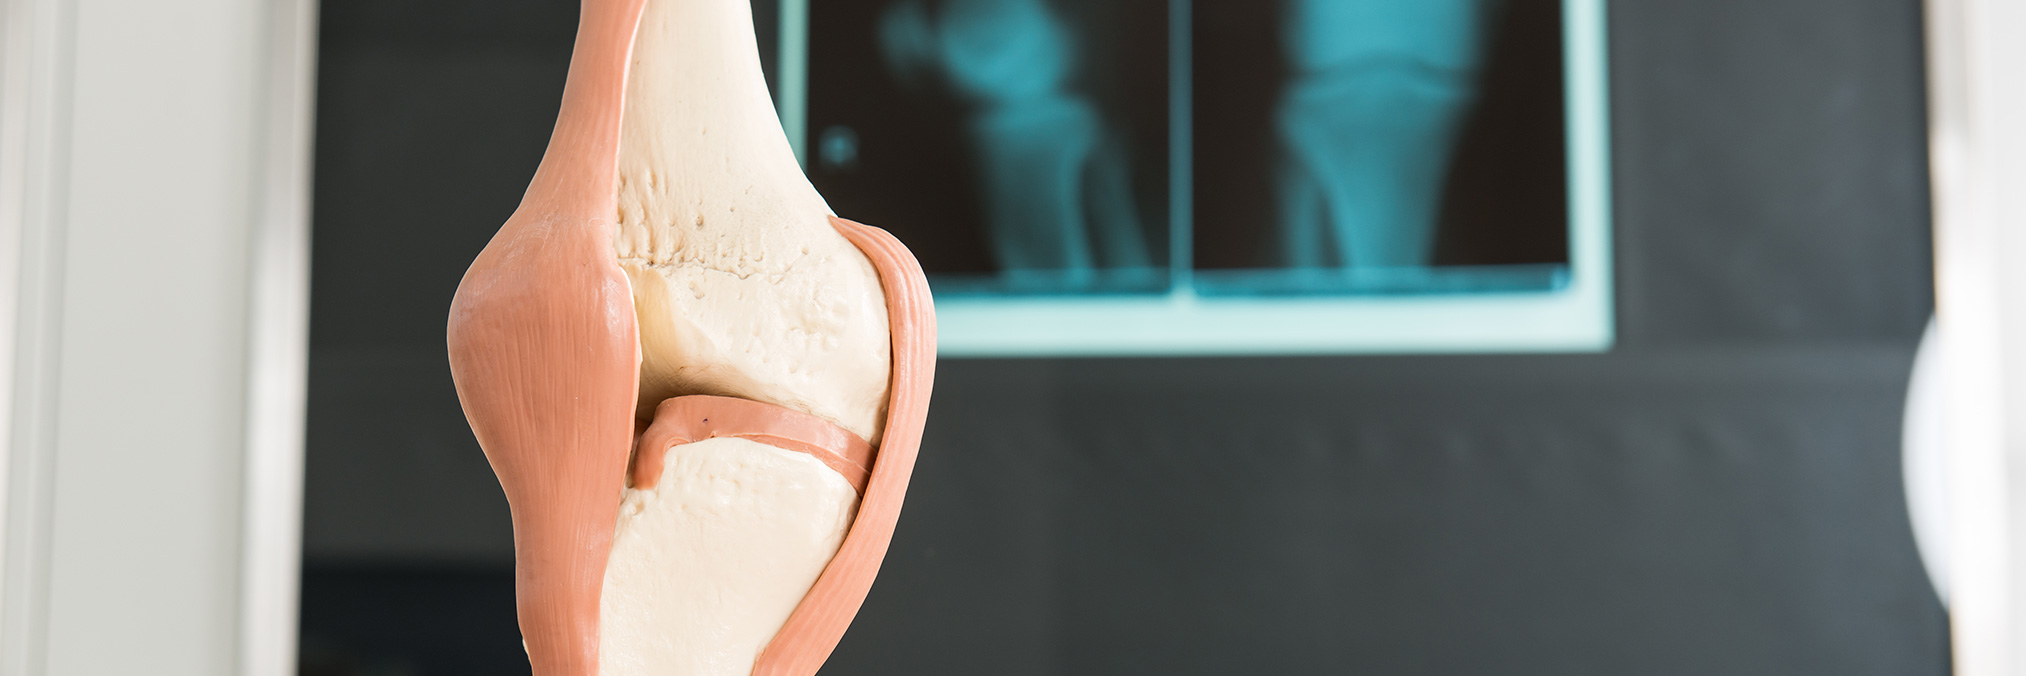 Who Is a Candidate for Knee Replacement Surgery?